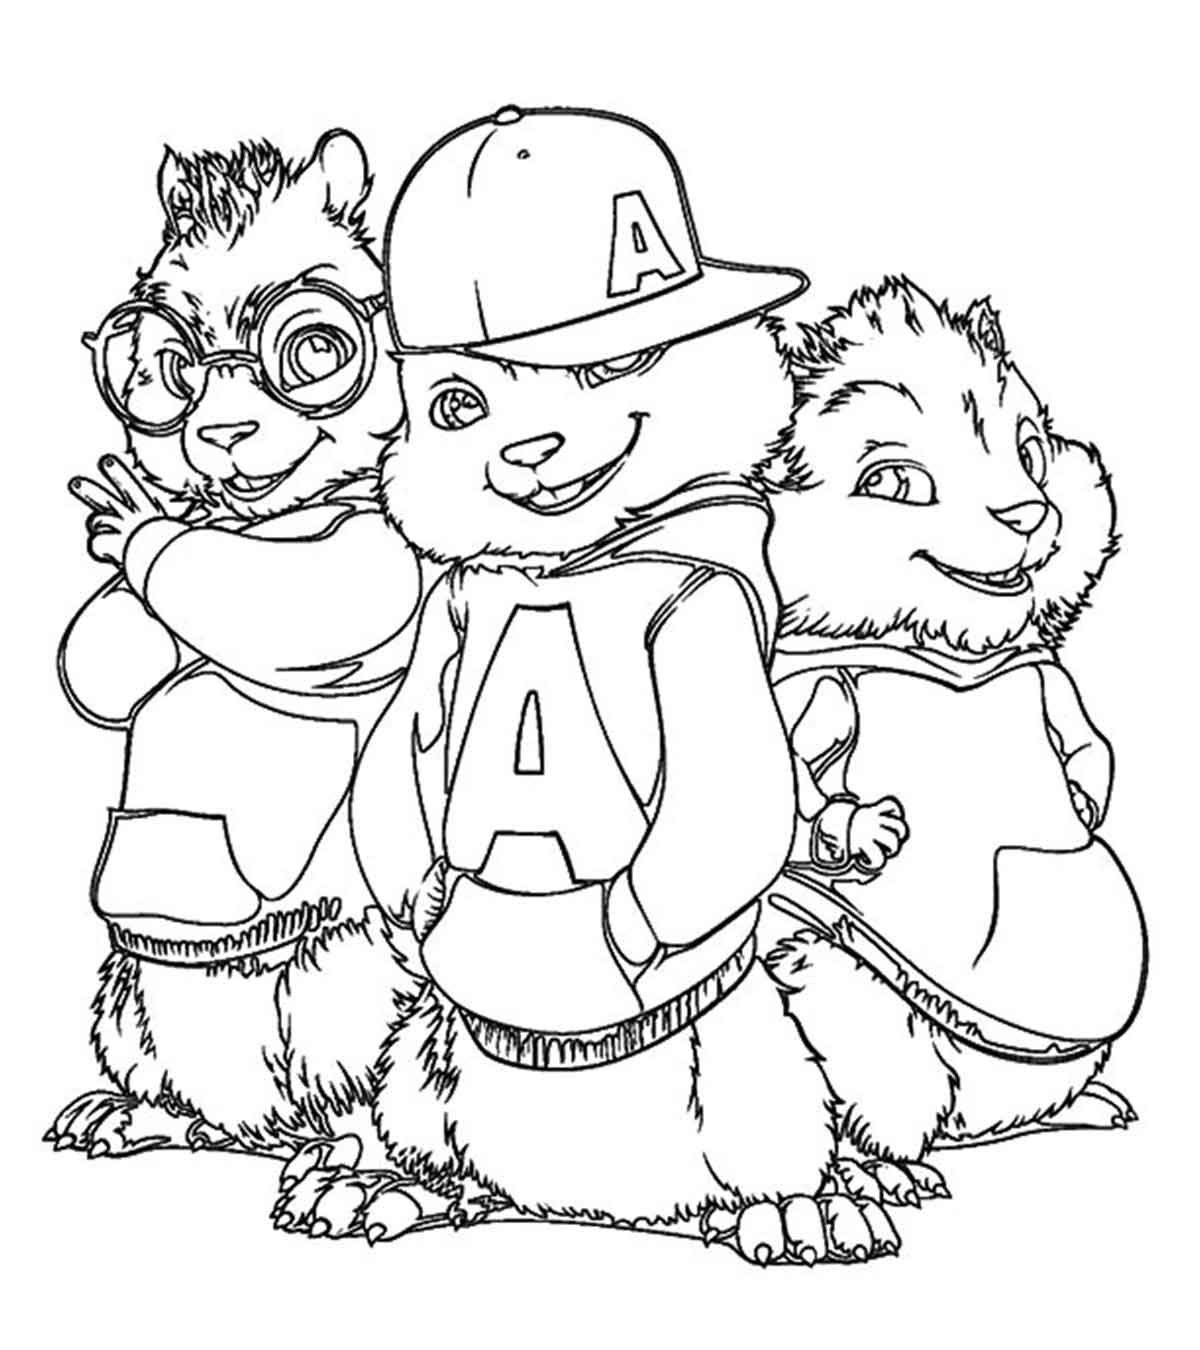 alvin and the chipmunks coloring free printable chipettes coloring pages for kids cartoon and alvin the chipmunks coloring